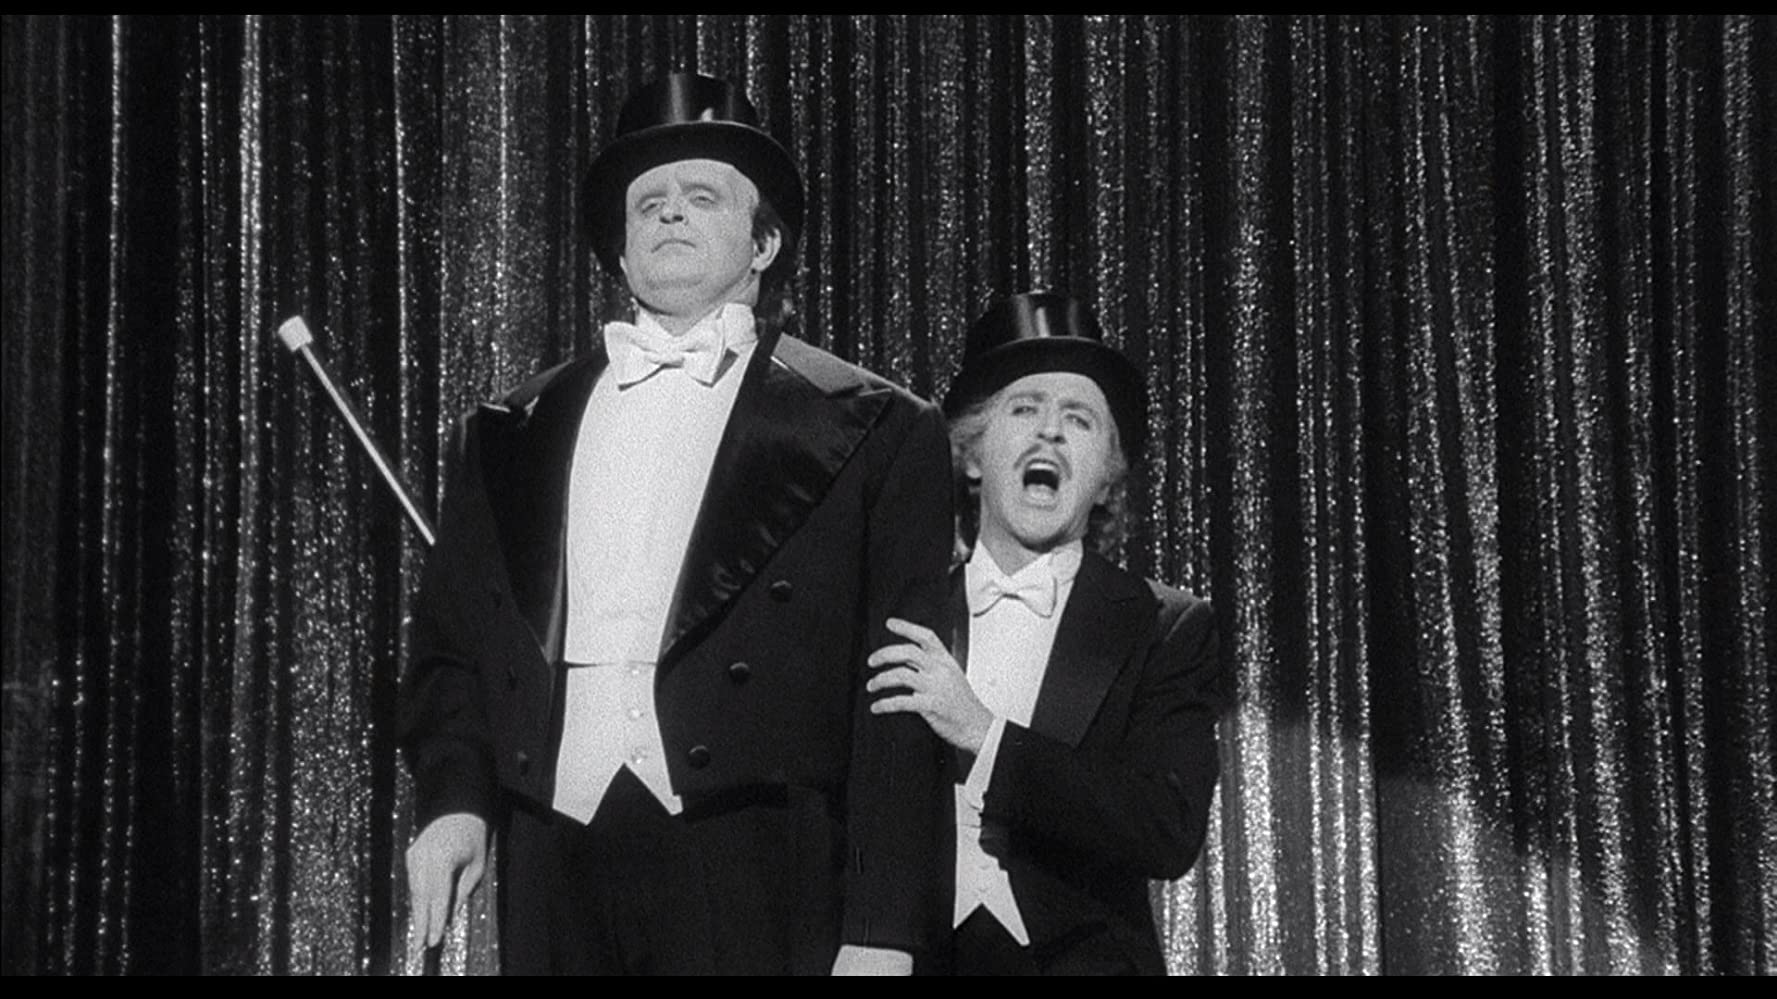 Gene Wilder and Peter Boyle in Young Frankenstein 1974